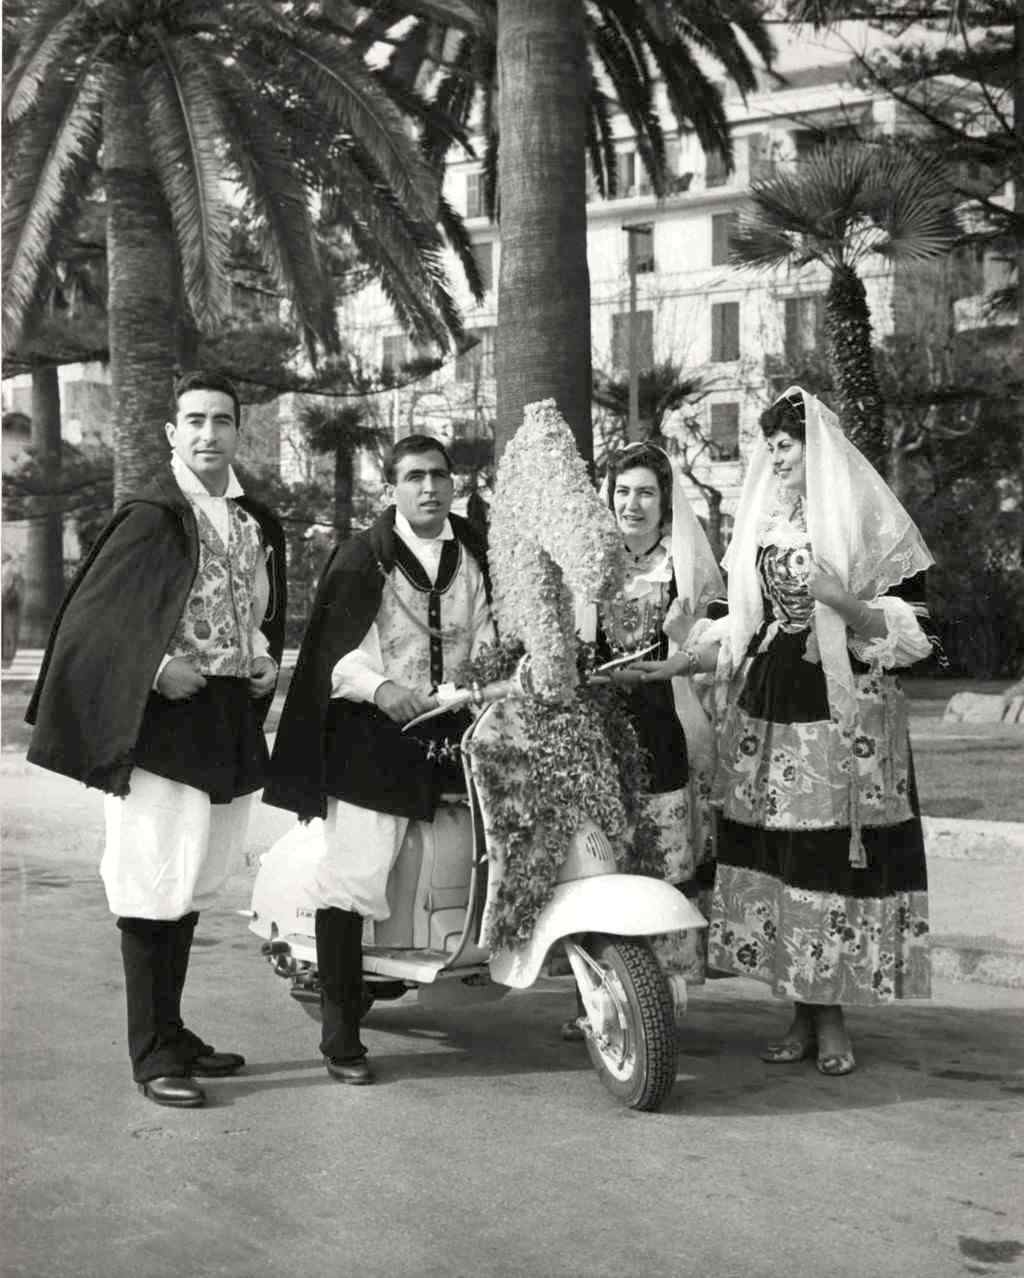 1961_Europe flower parade in Sanremo_1